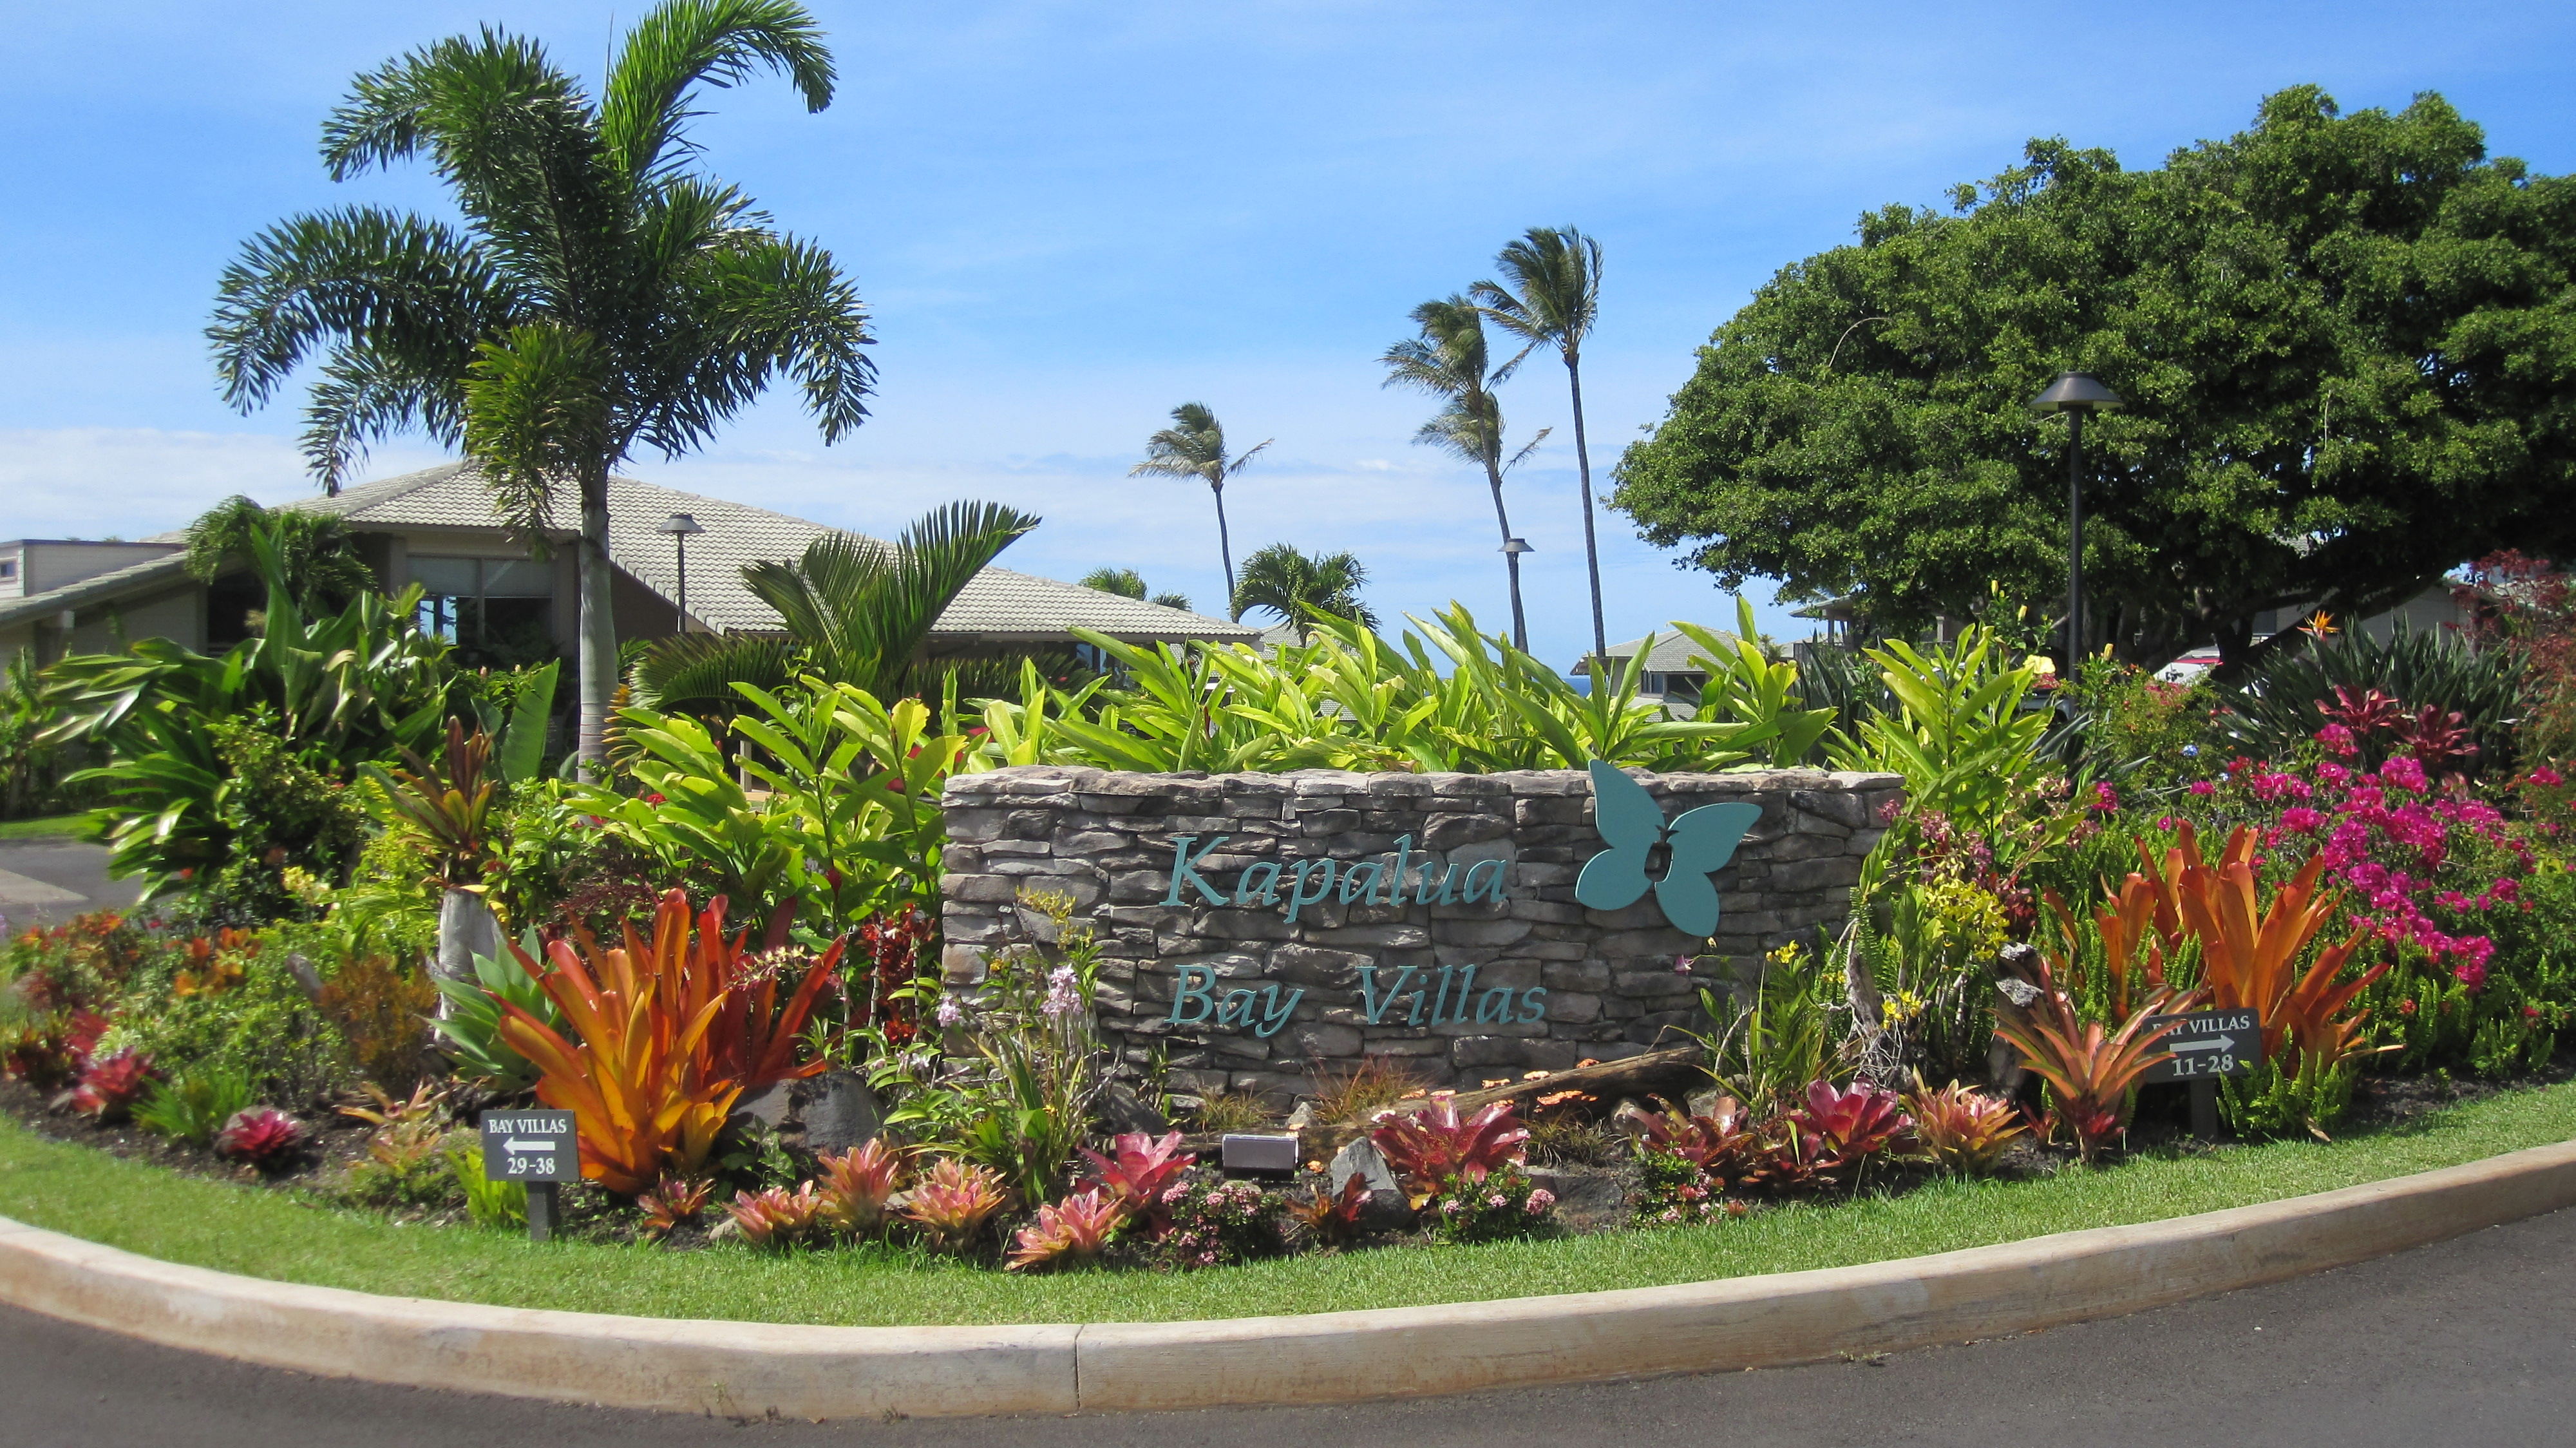 Entrance to Kapalua Bay Villas